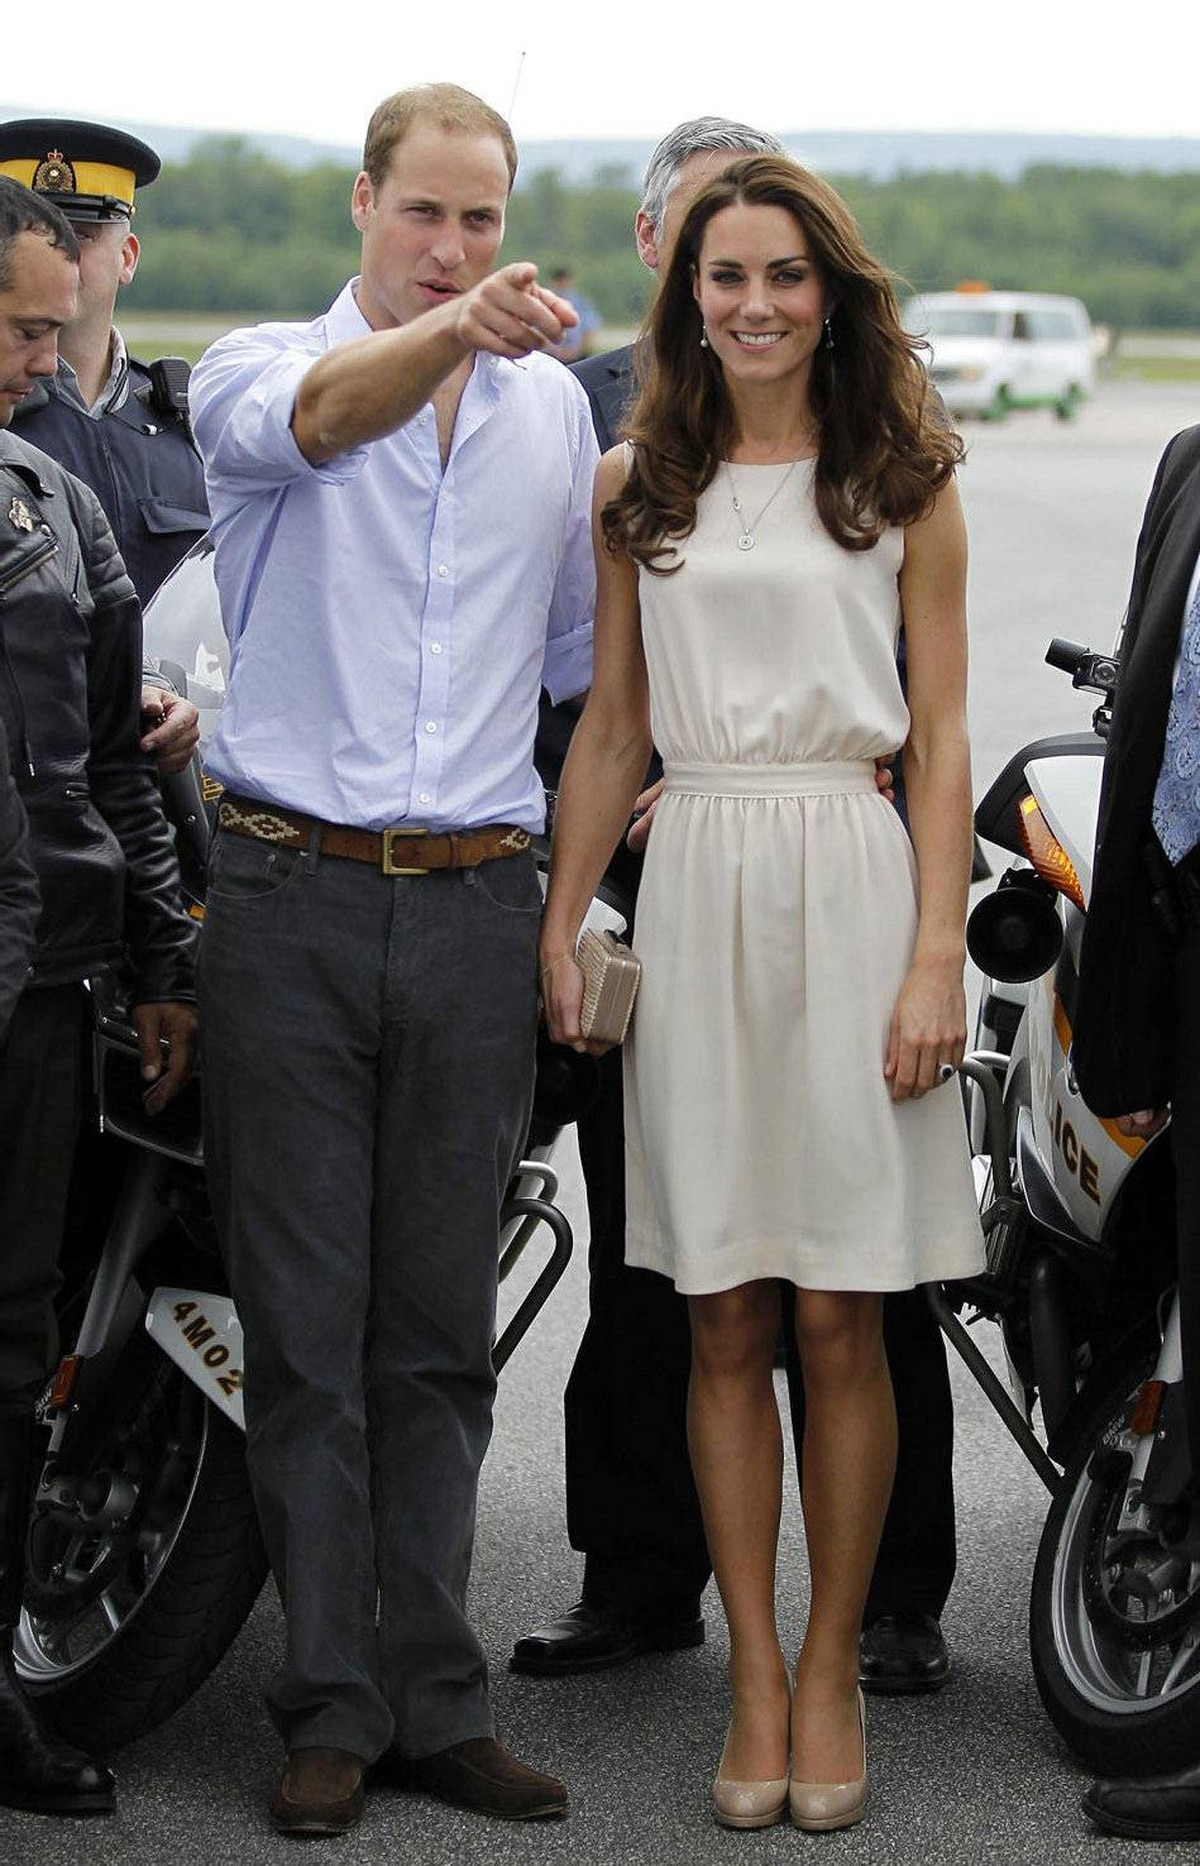 Prince William and his wife Catherine, Duchess of Cambridge, pose for a photo before departing Jean Lesage International Airport in Quebec City July 3, 2011.